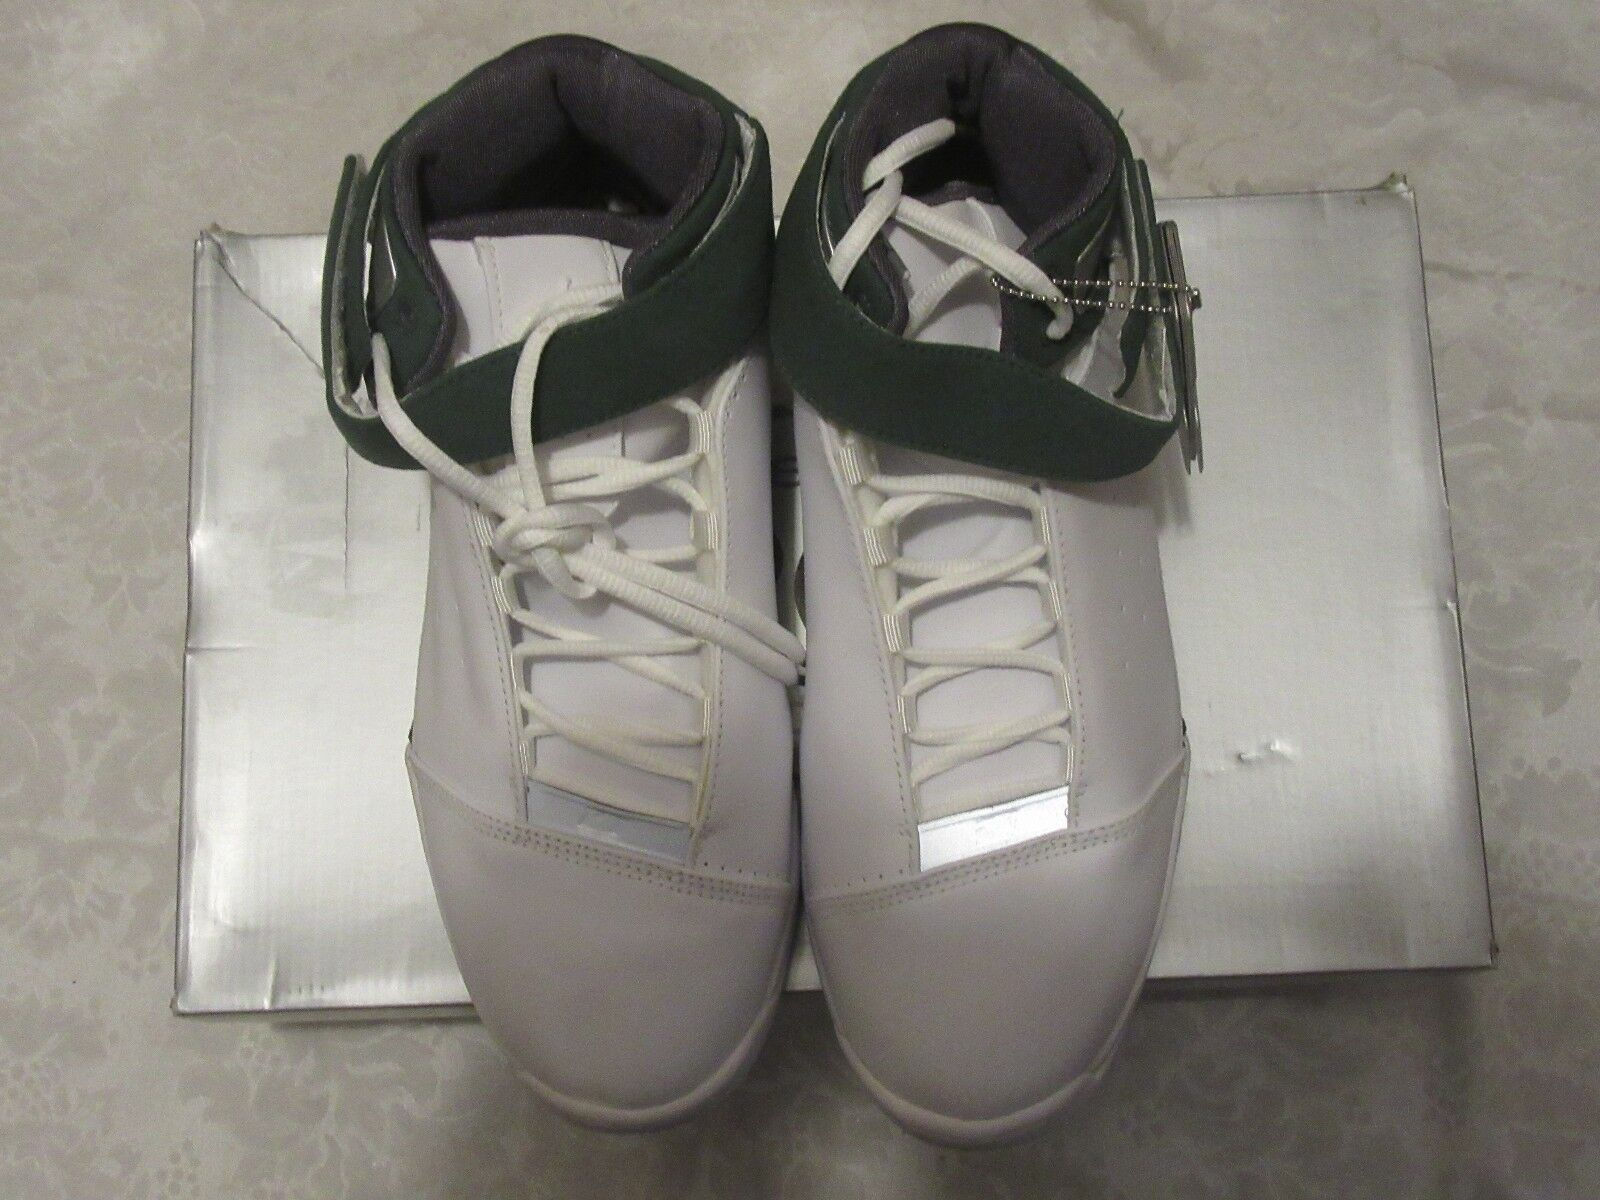 Nike Jordan 2005 Team Strong Green White 311868 107 Size 10 Sneakers